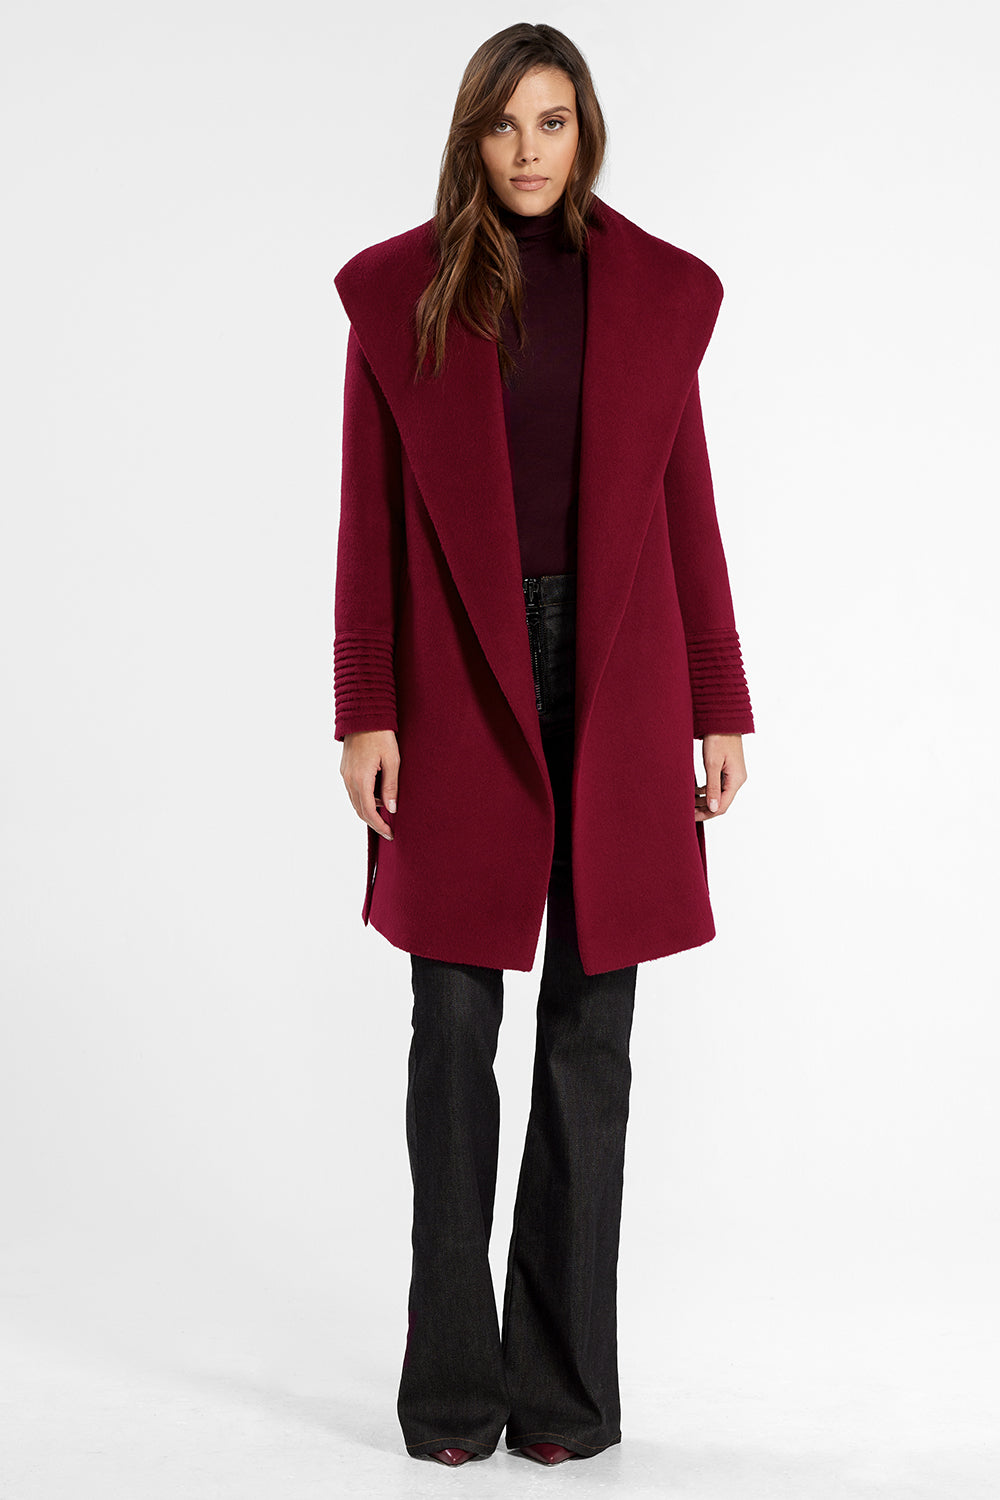 Sentaler Mid Length Shawl Collar Wrap Coat featured in Baby Alpaca and available in Garnet Red. Seen open.